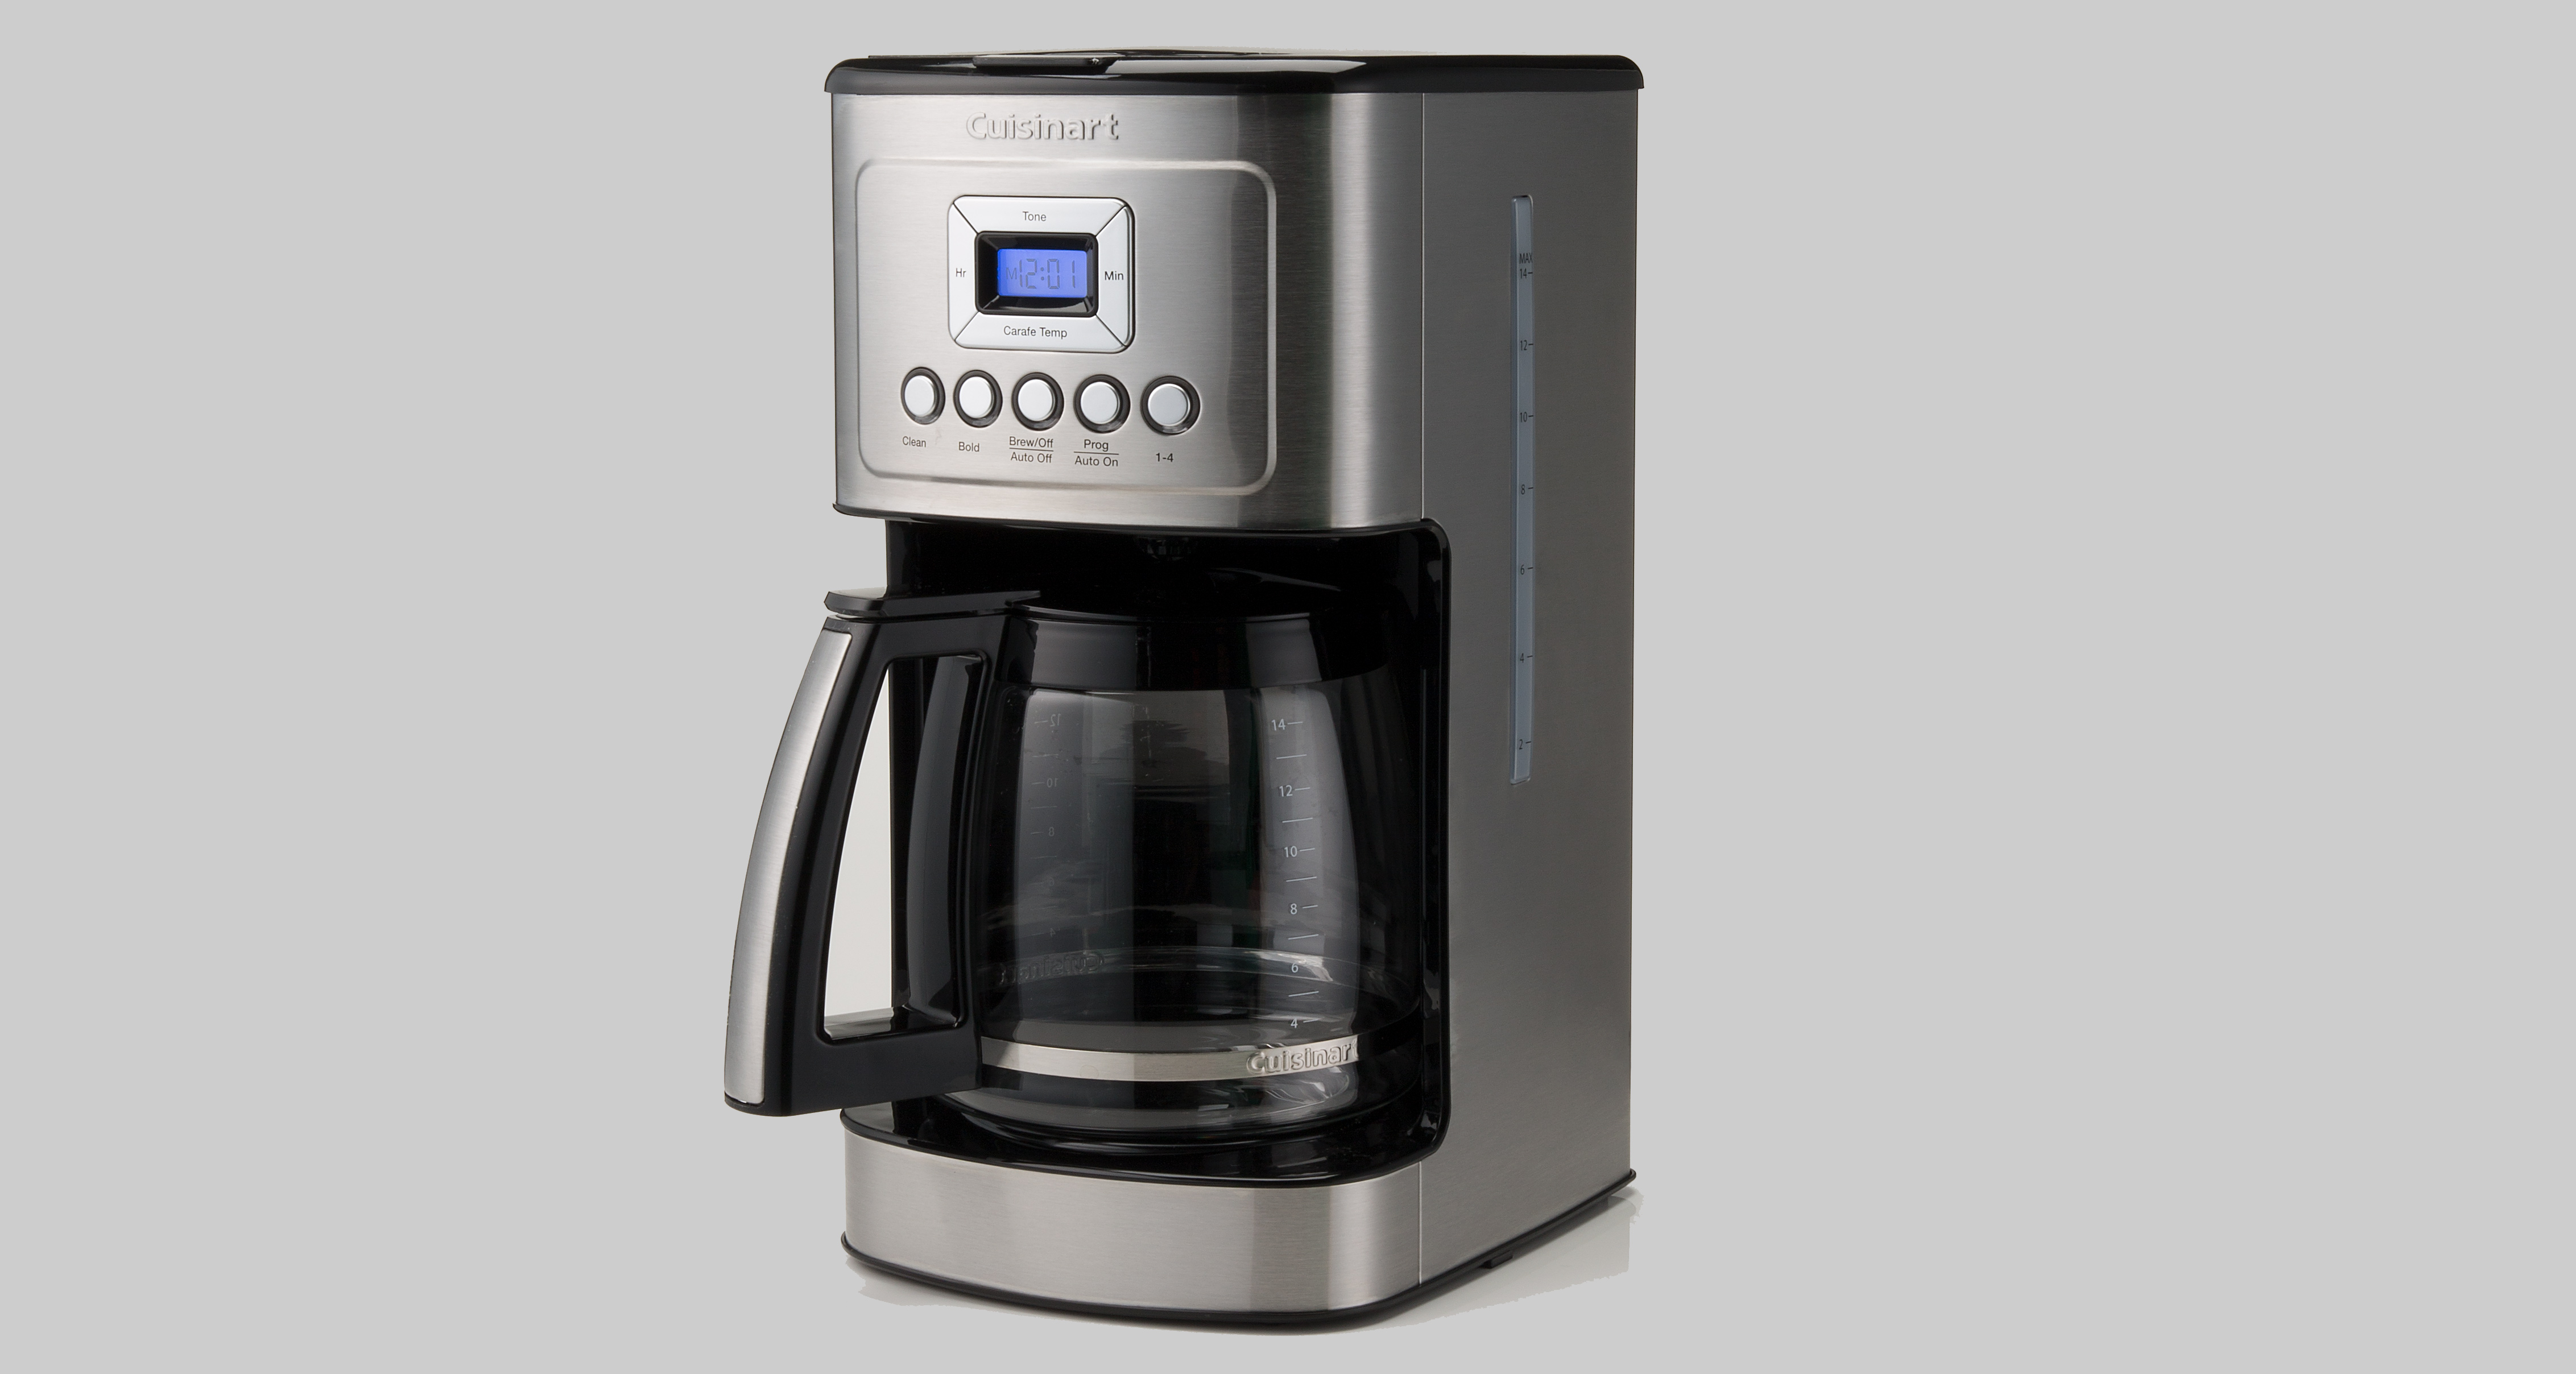 Consumer Guide Coffee Maker : Cuisinart Coffee Maker Is the New Champ - Consumer Reports